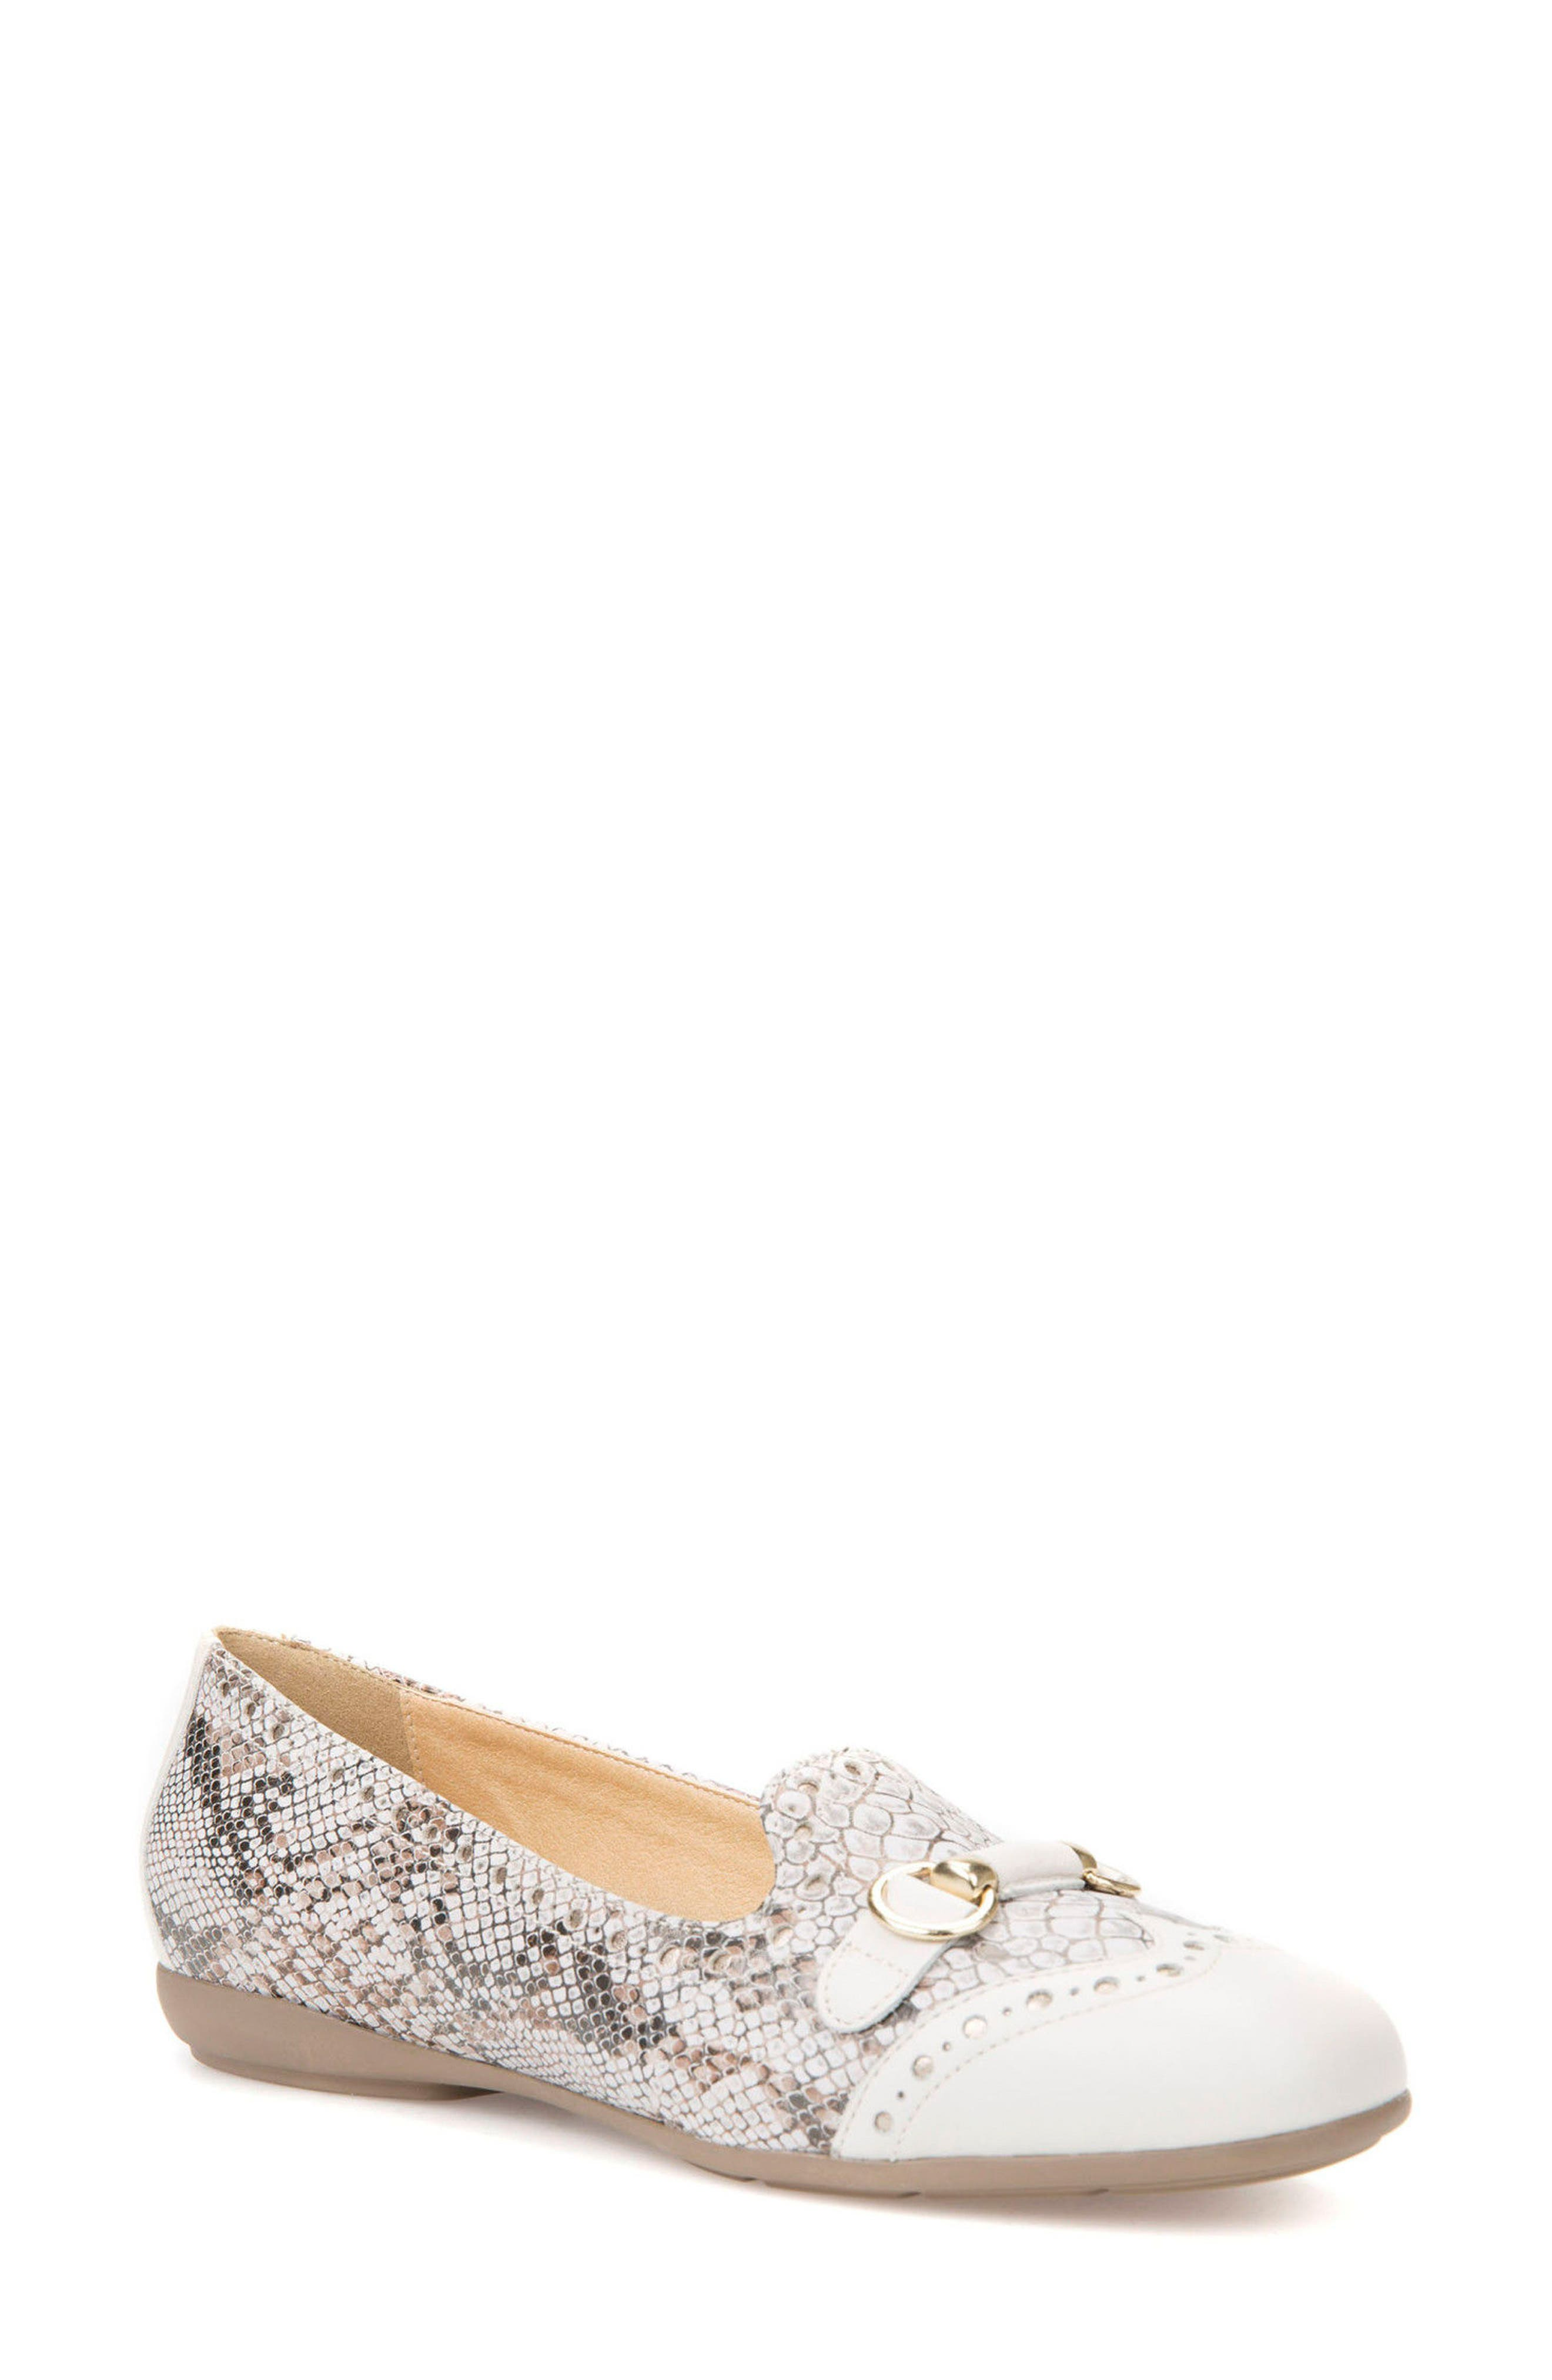 Annytah Loafer,                             Main thumbnail 1, color,                             Off White Leather